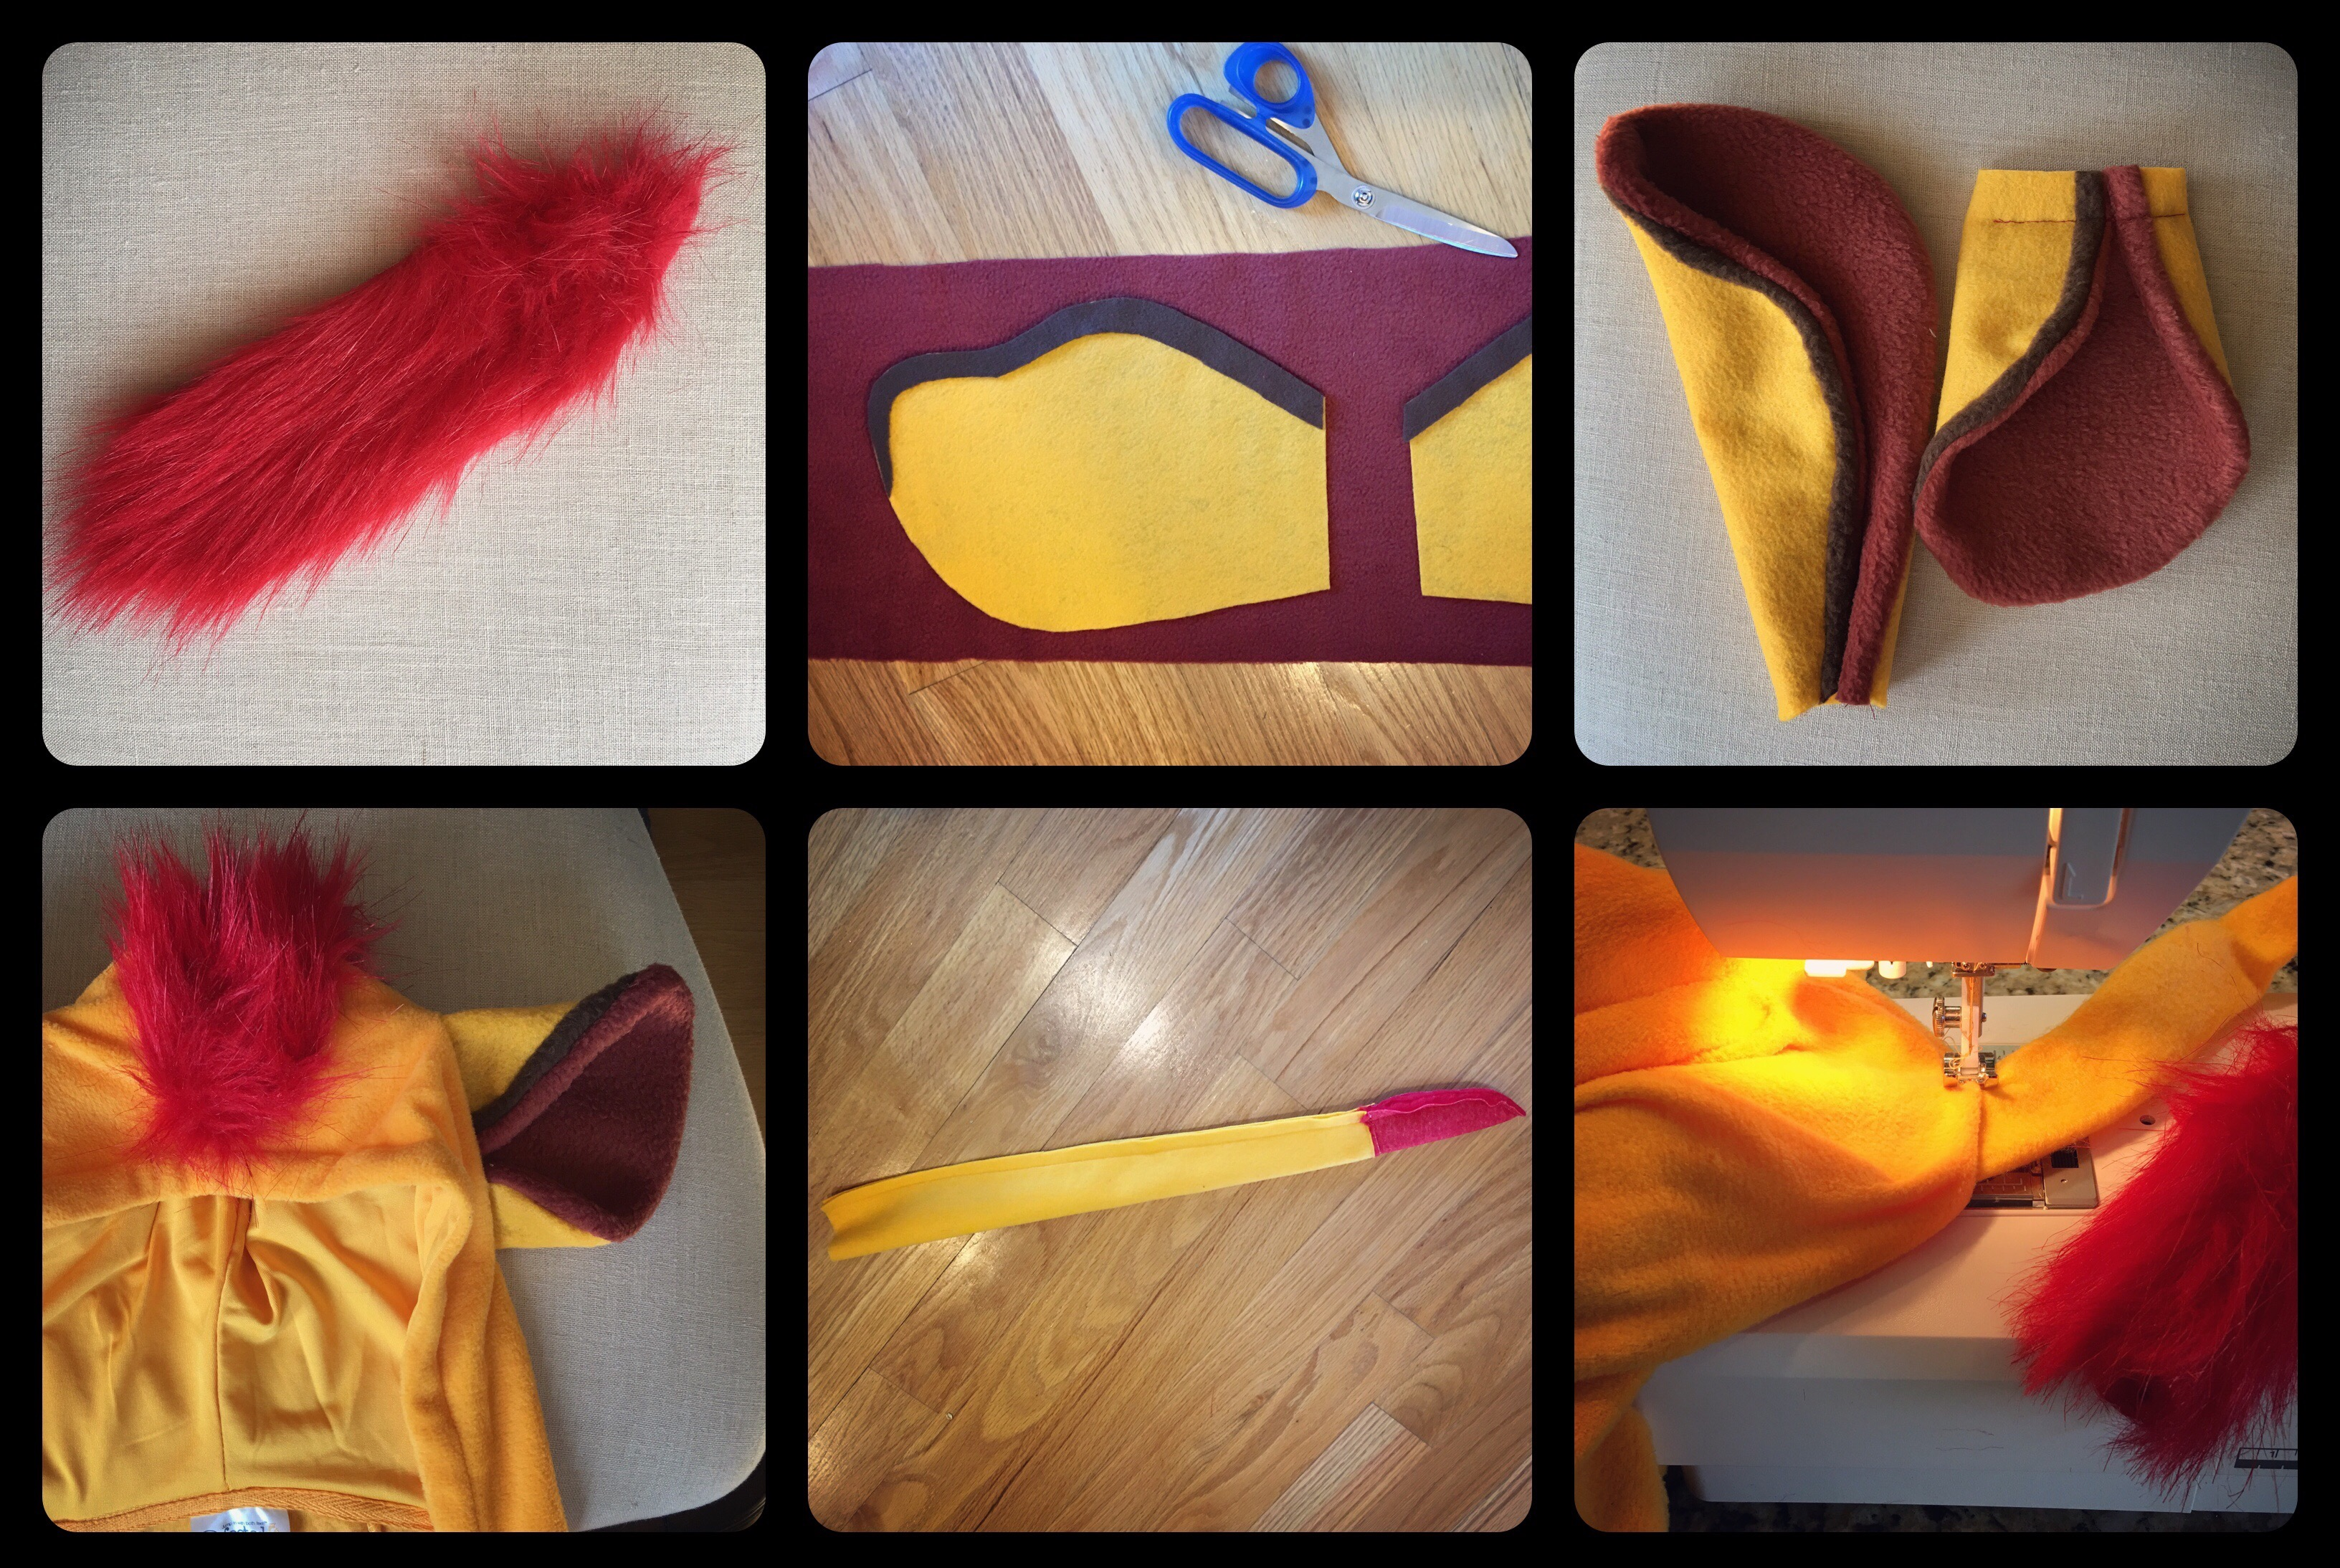 diy lion guard costumes